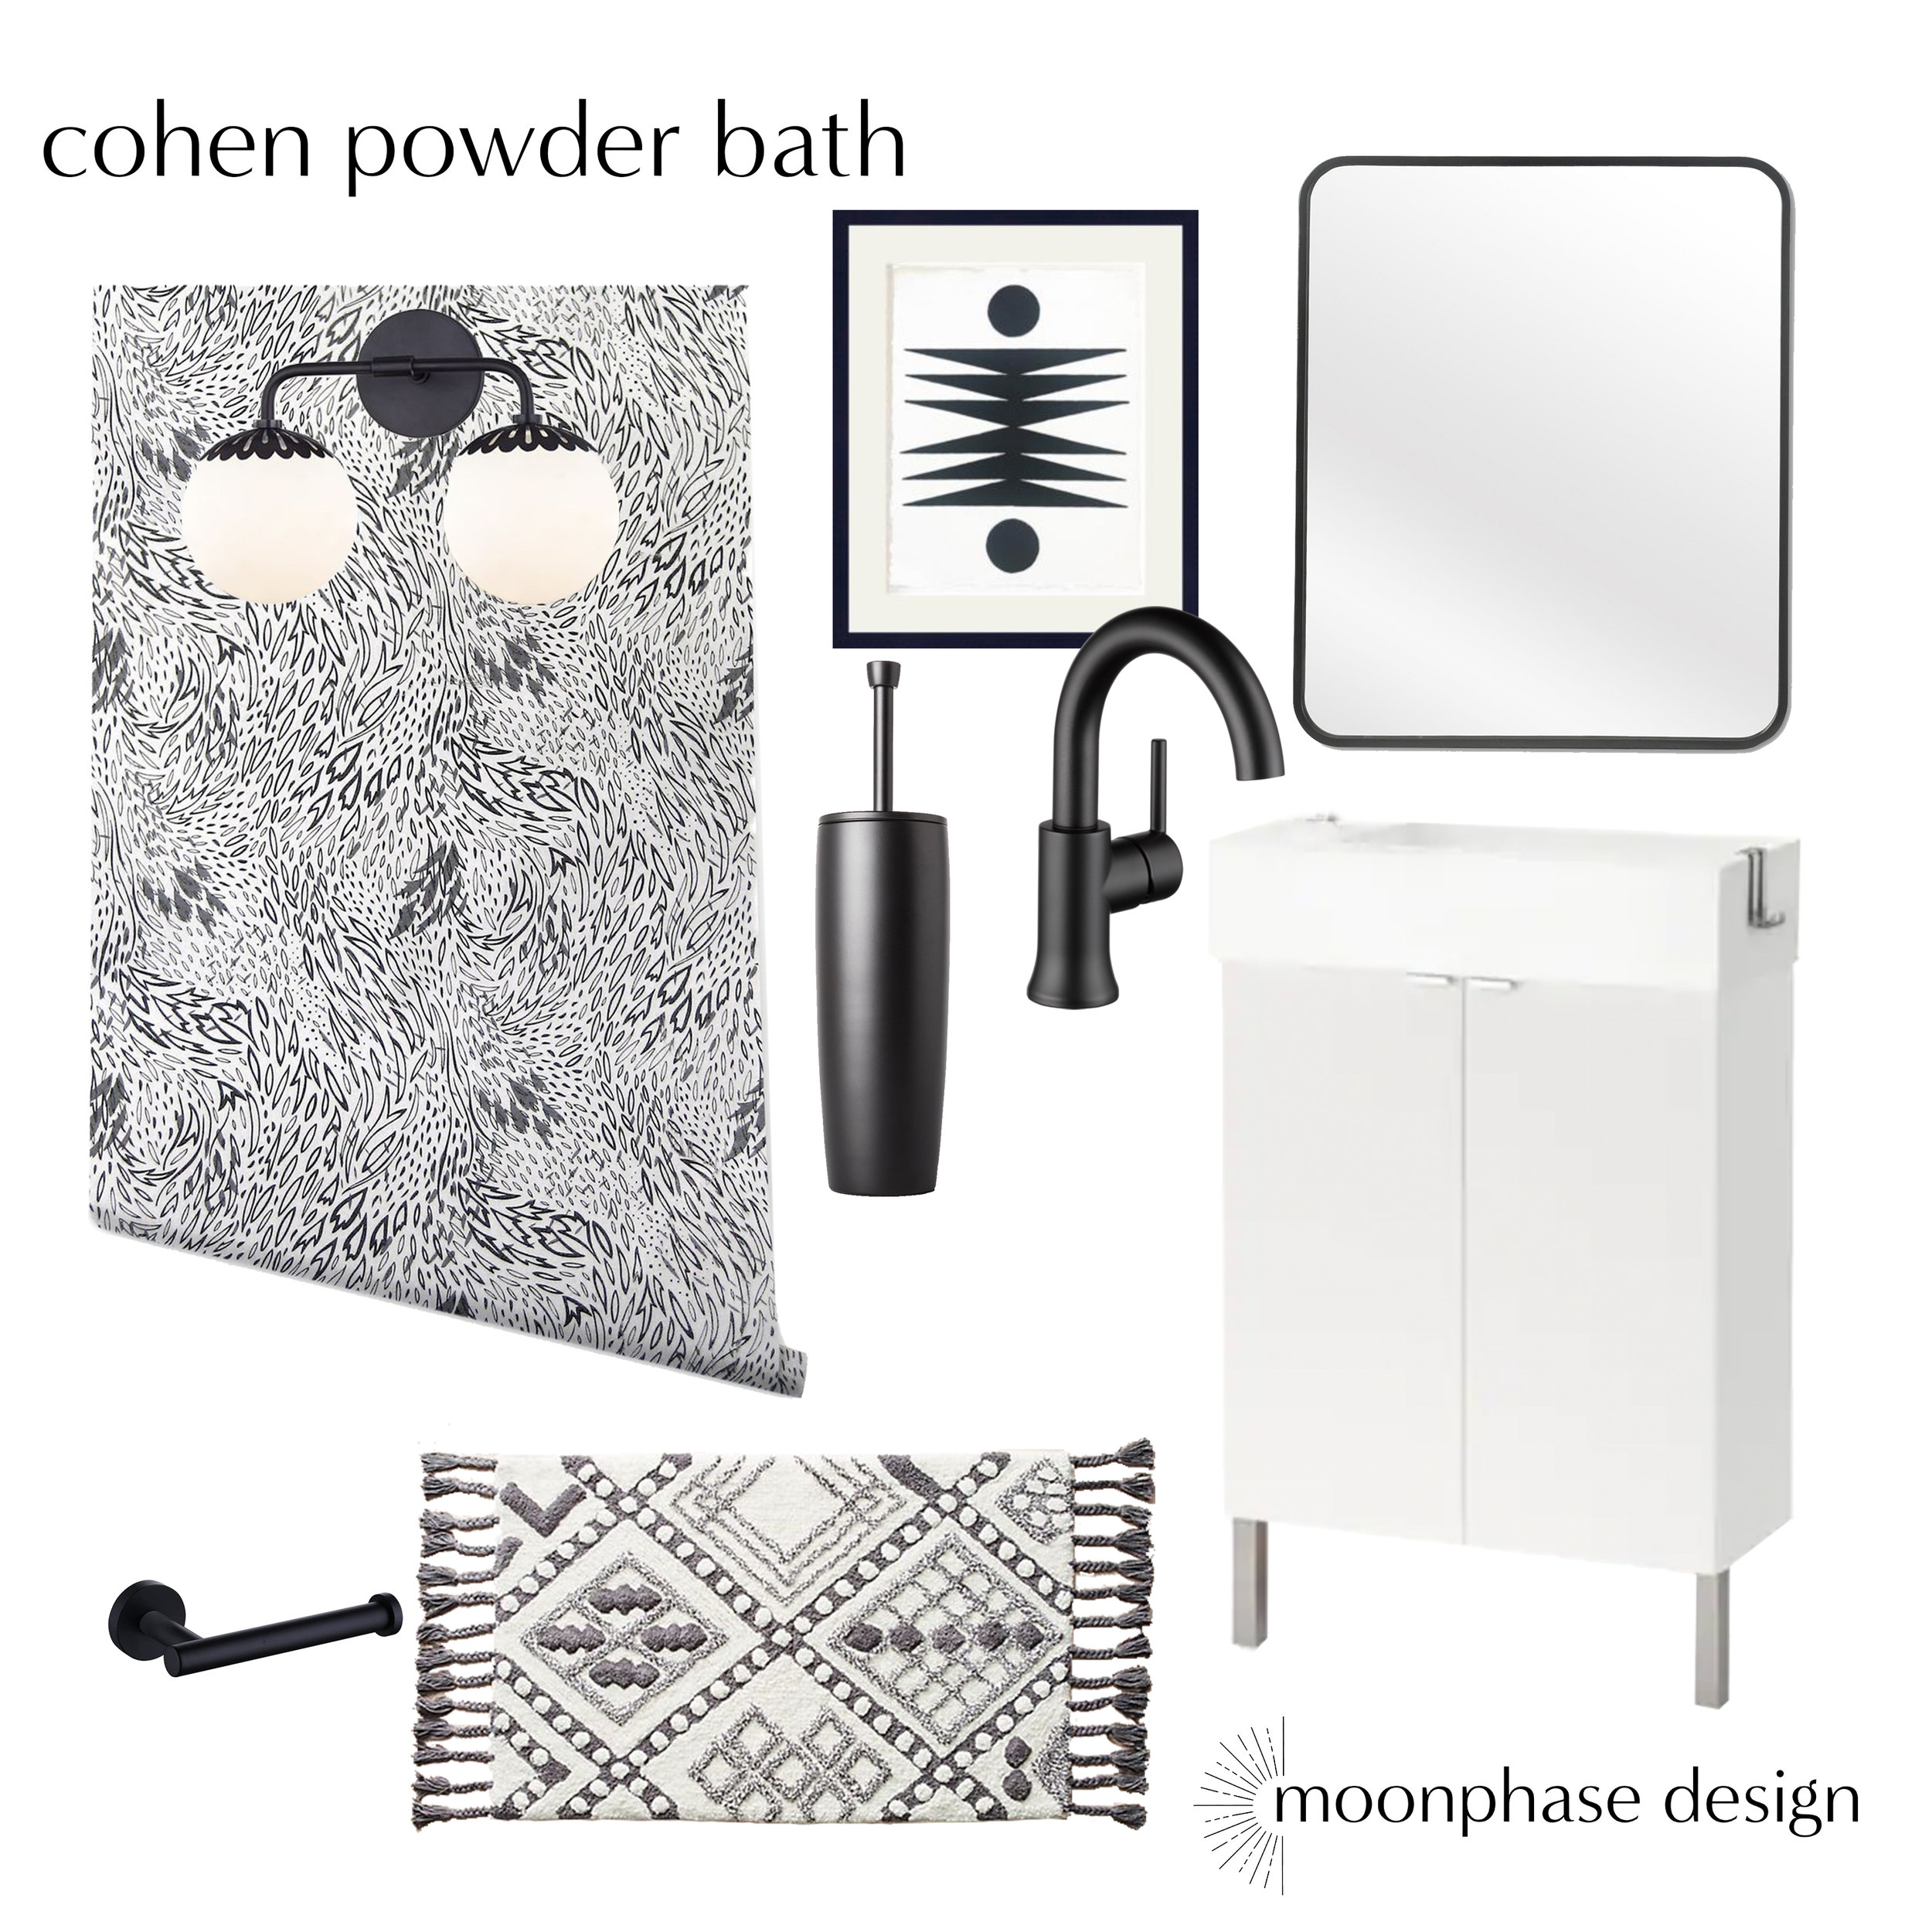 powder bath moodboard2.jpg